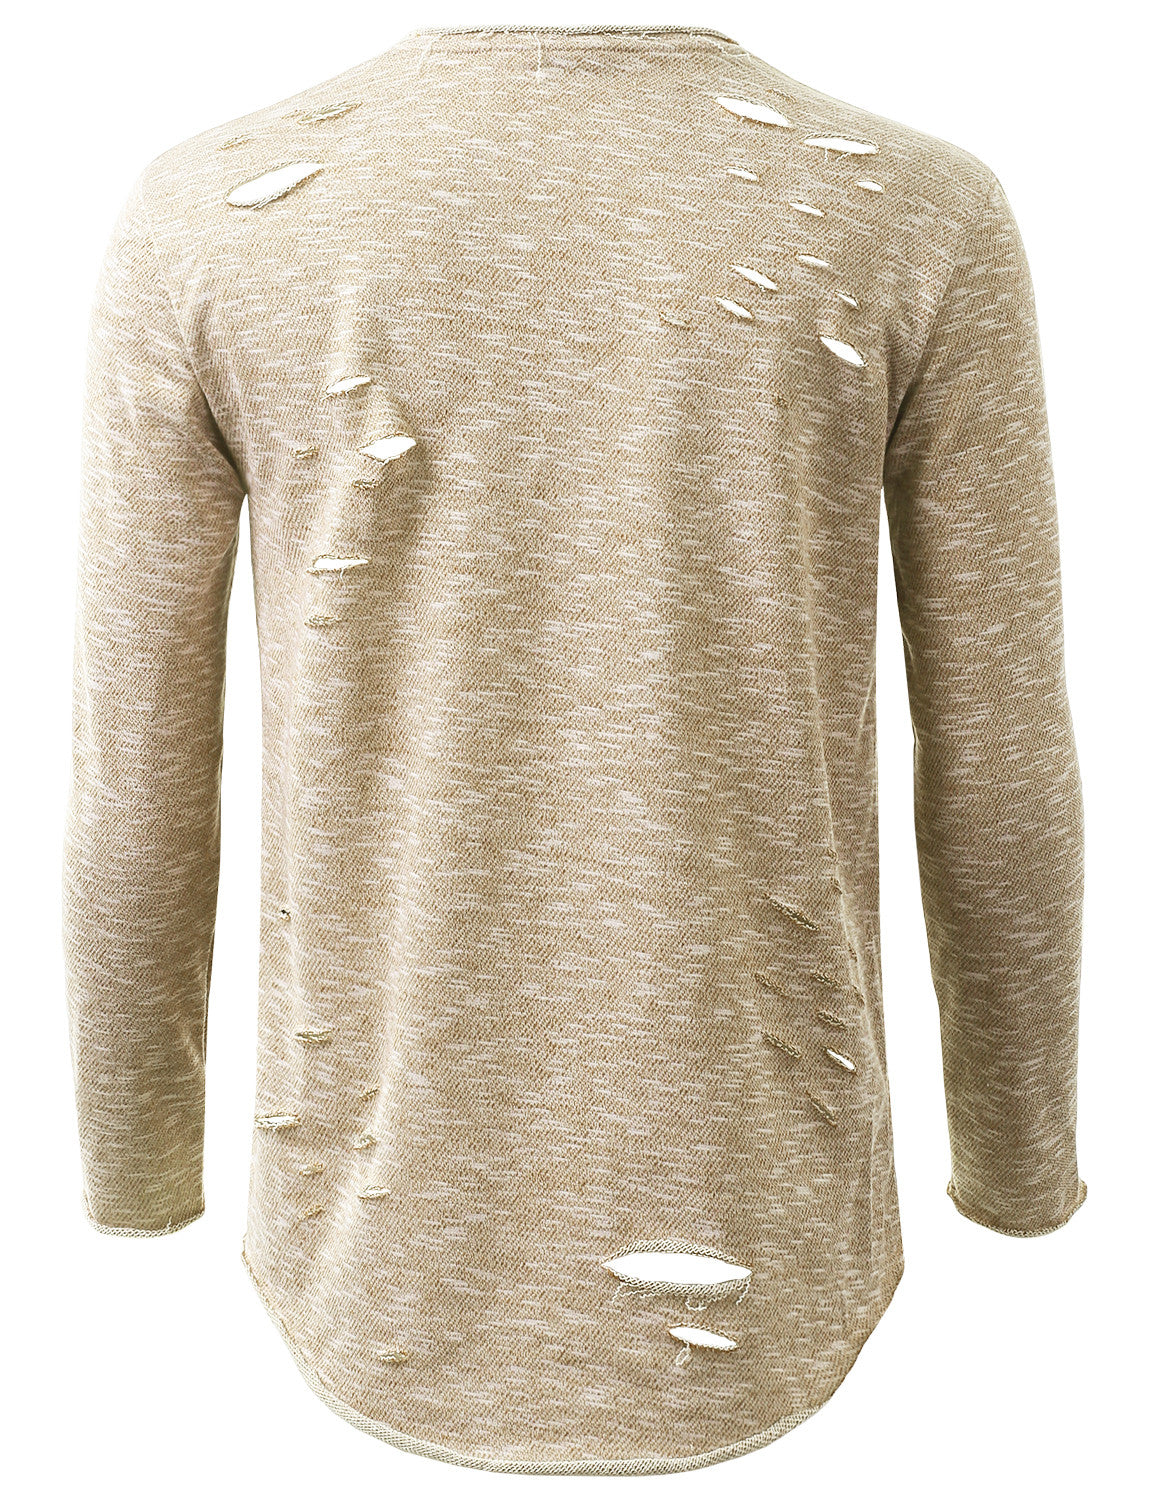 BEIGE French Terry Ripped Long Sleeve Tshirt - URBANCREWS